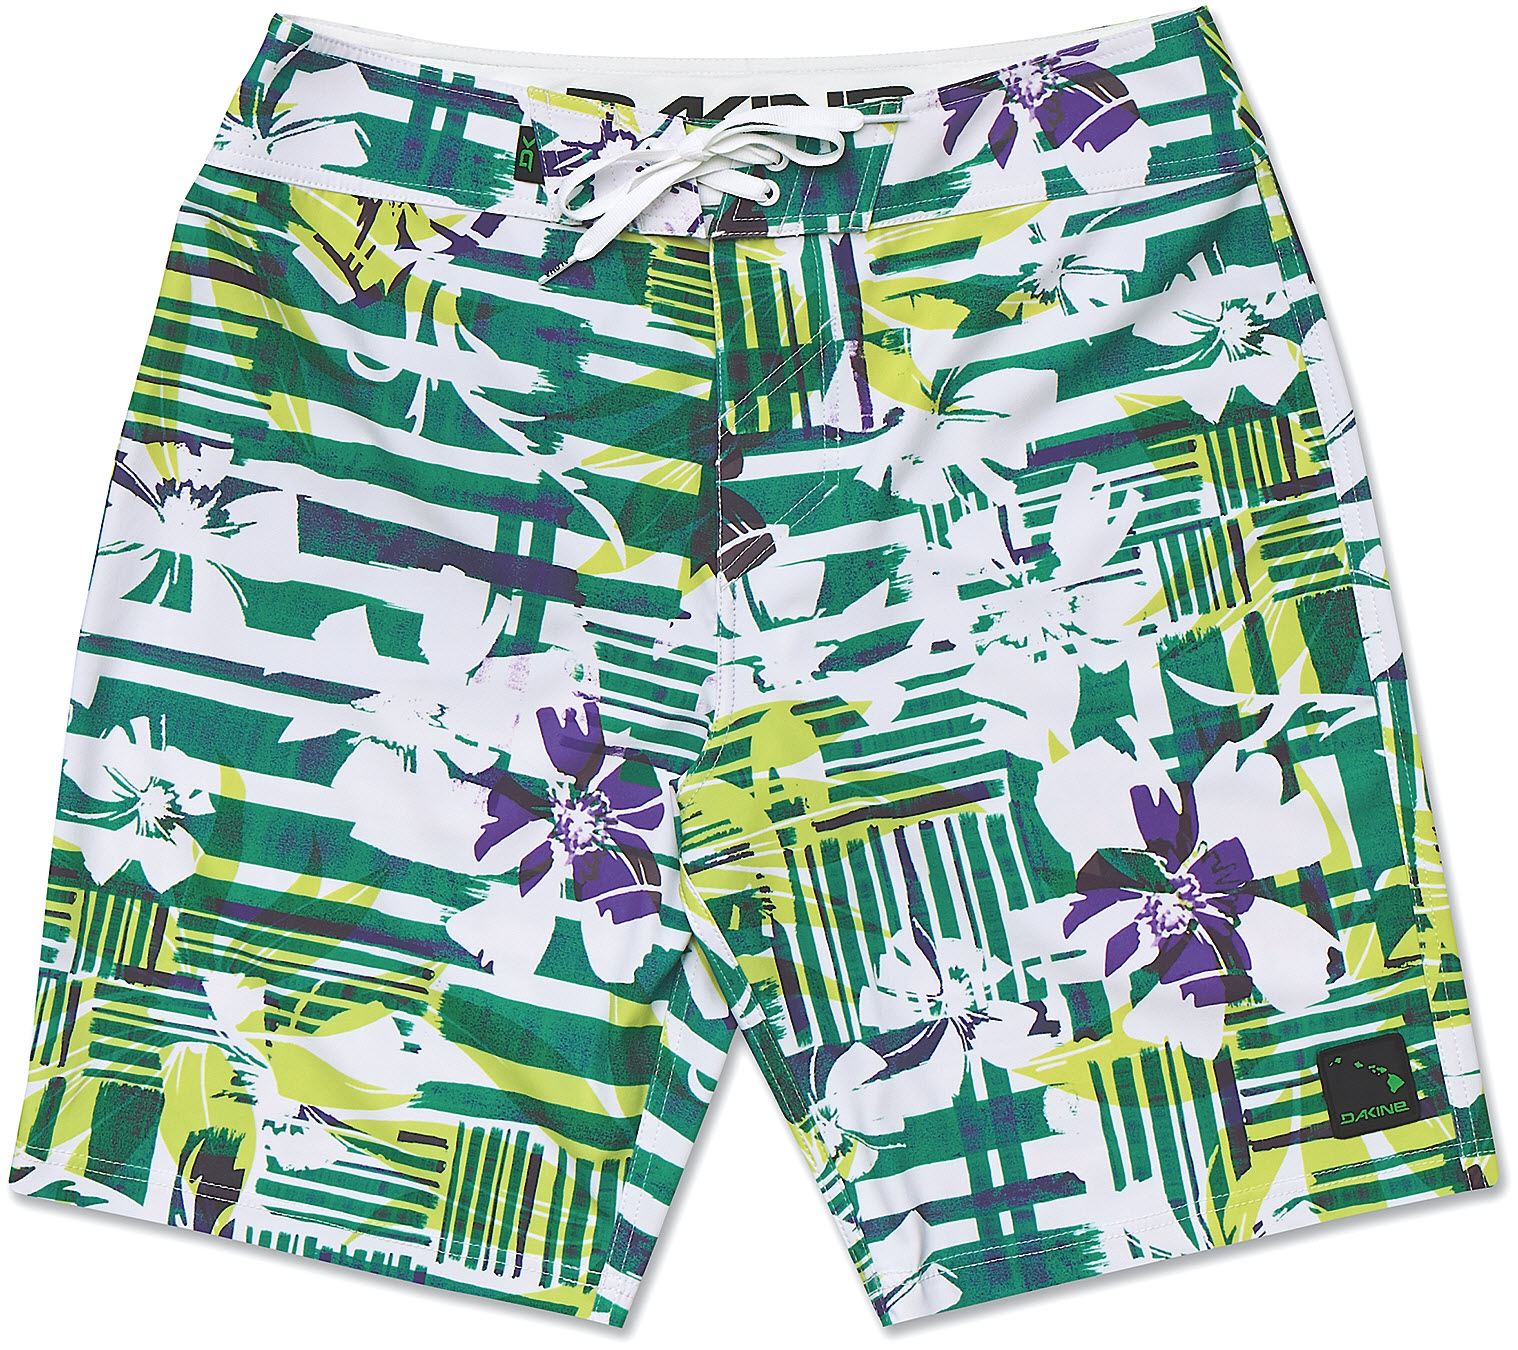 Product image of Dakine Down Wind Board Shorts 2015 in White 34